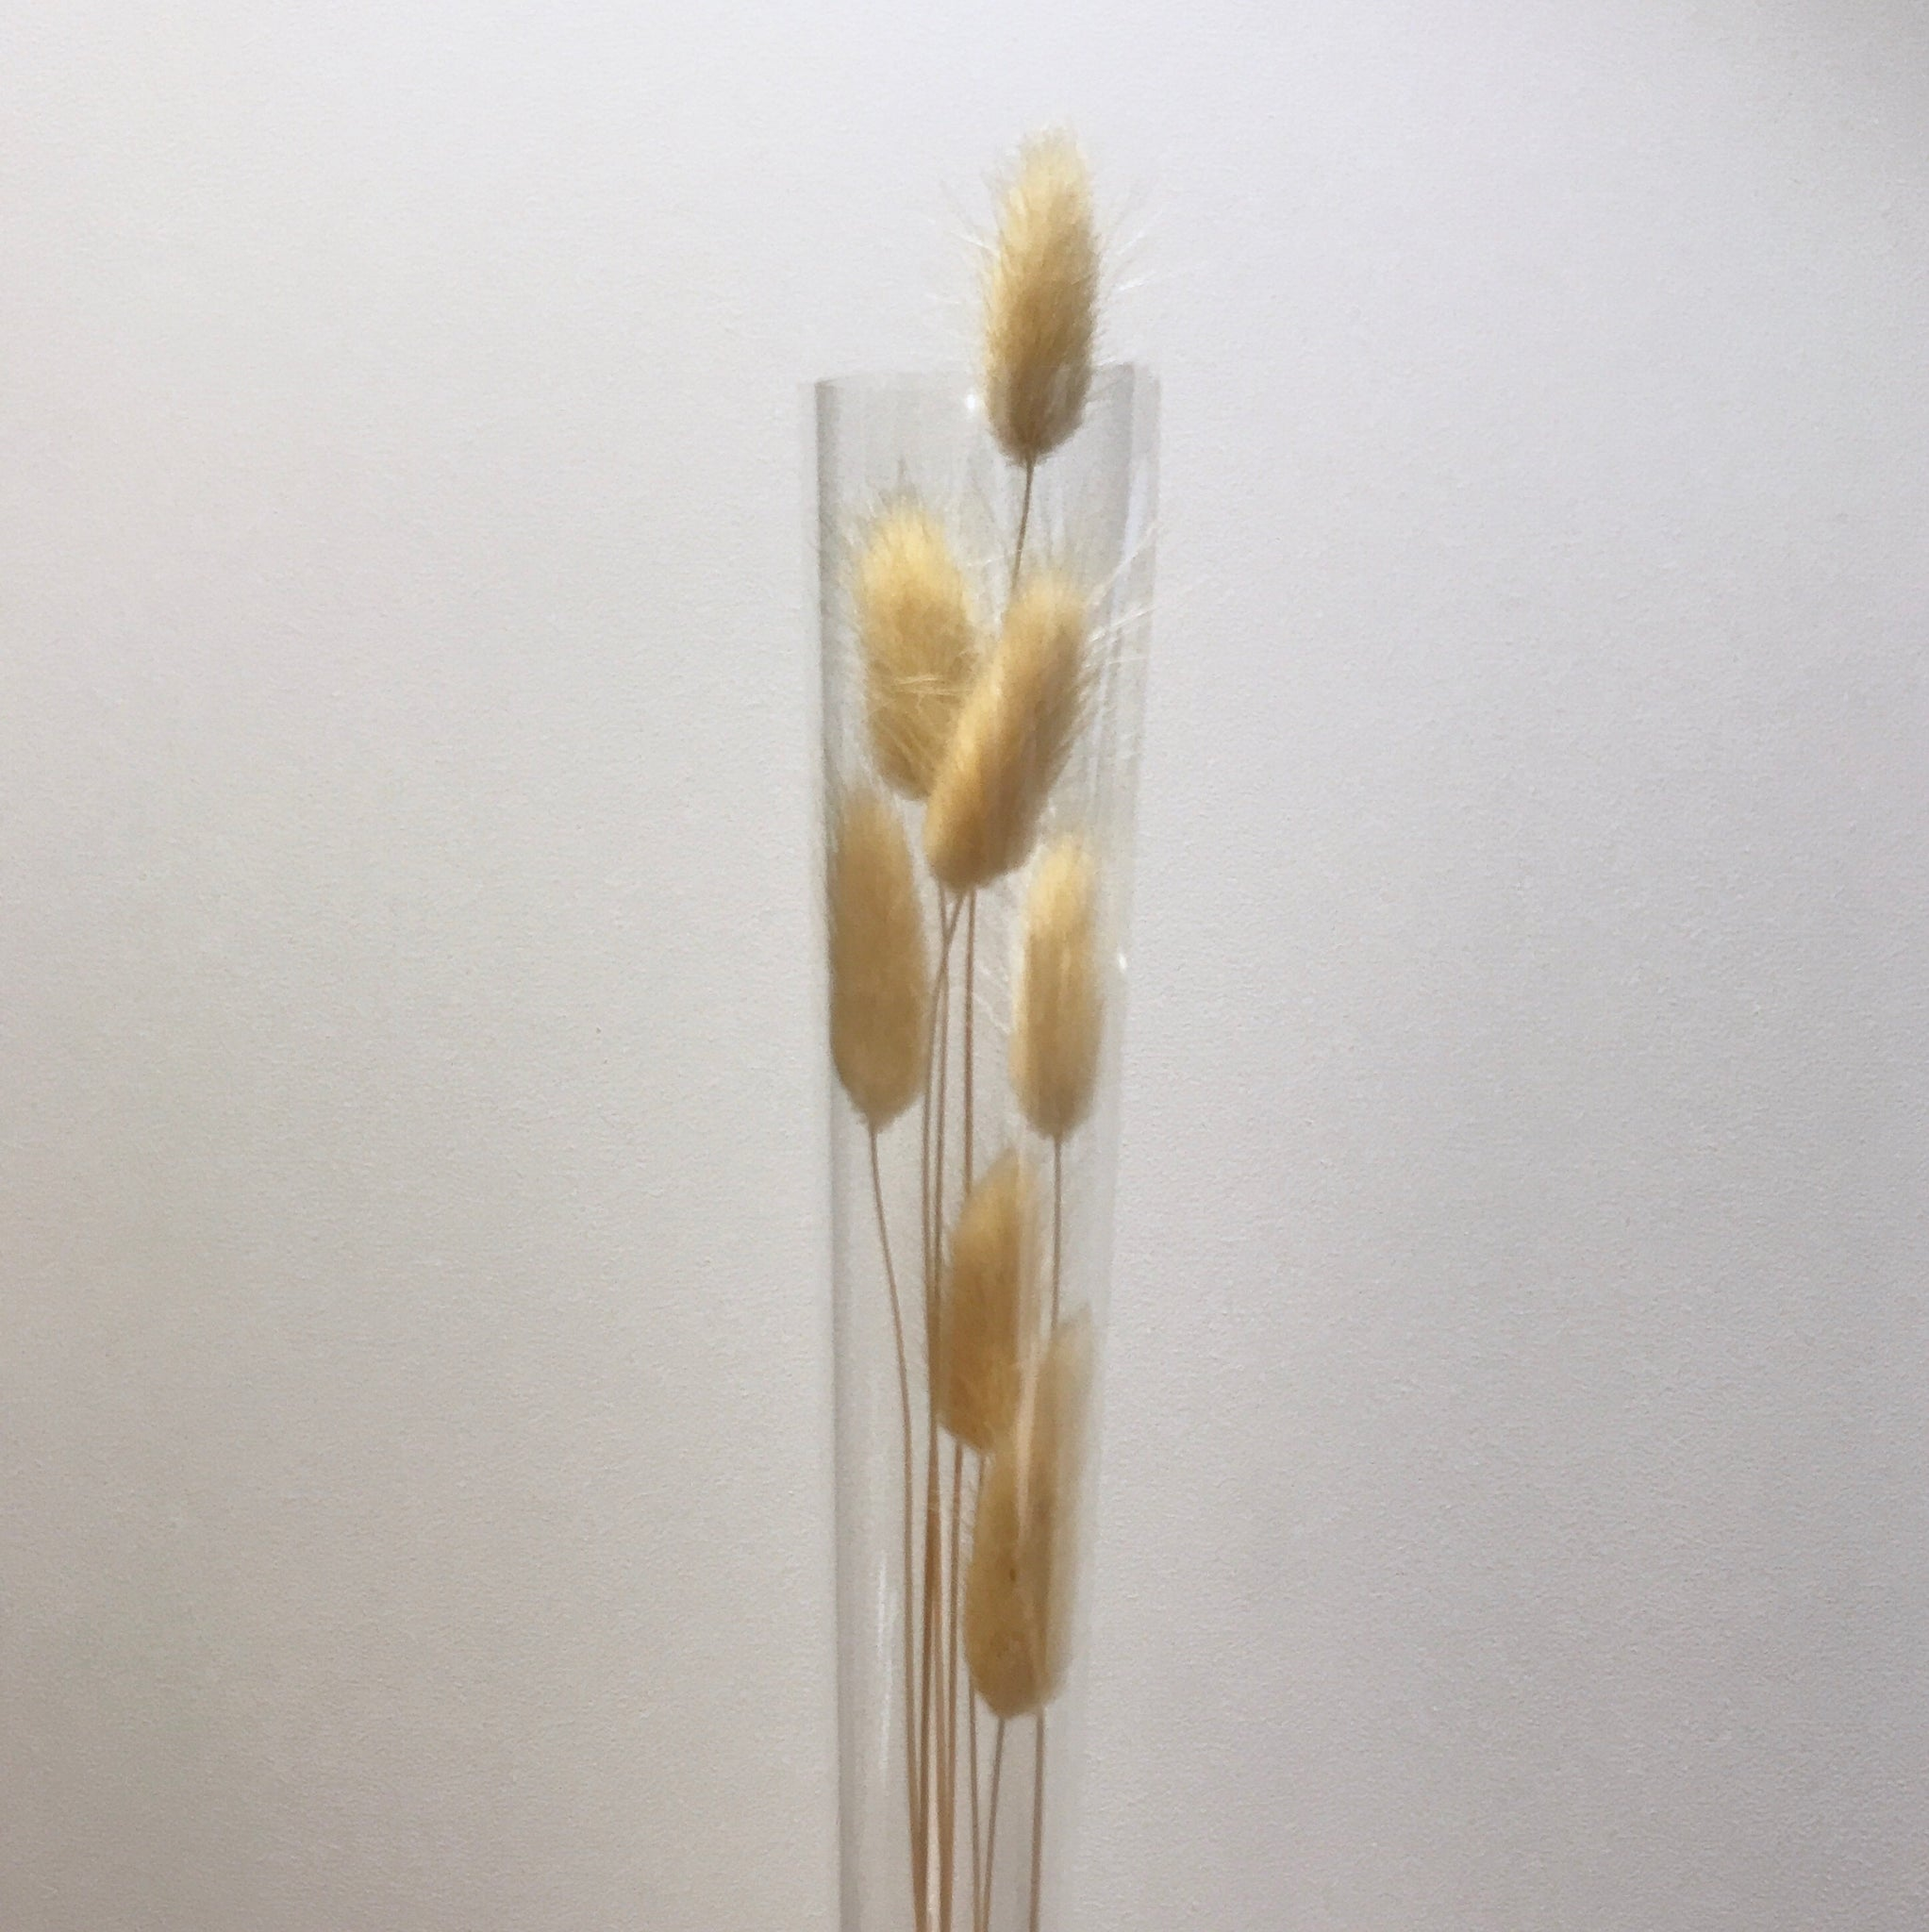 Bunny tails, Dried/ preserved - Kesed creates